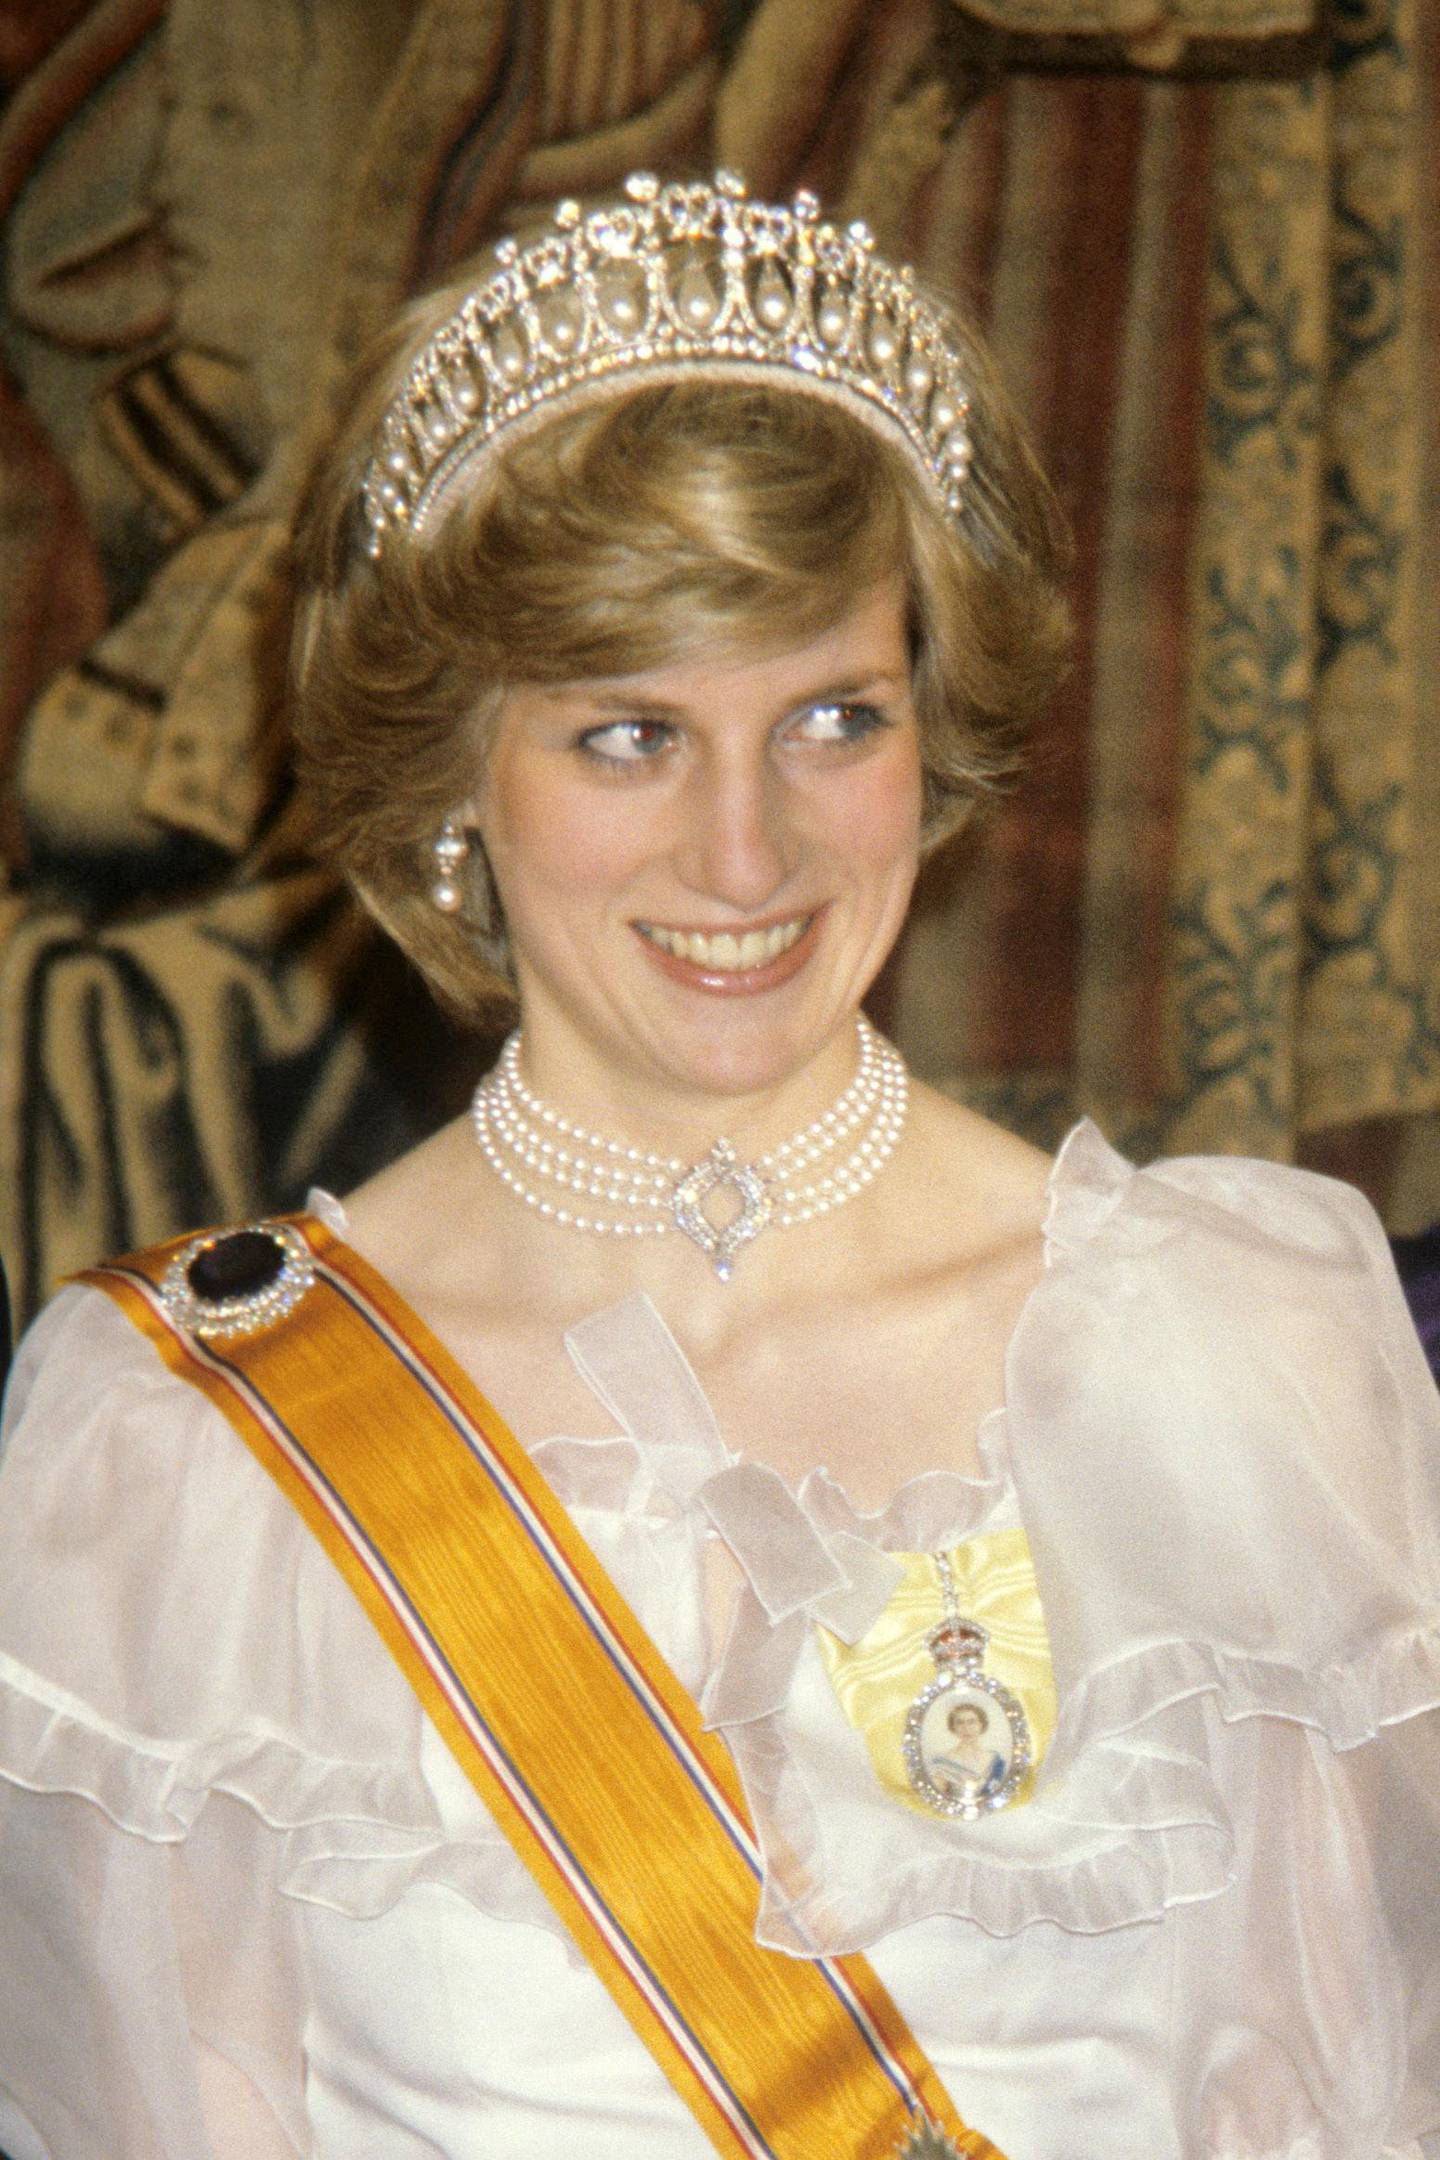 The Princess of Wales at a banquet for the British royal family given by Queen Beatrix and Prince Claus of the Netherlands at Hampton Court Palace. The Princess wears the sash of the House Order of Orange, presented to her by Queen Beatrix. PA Images via Reuters